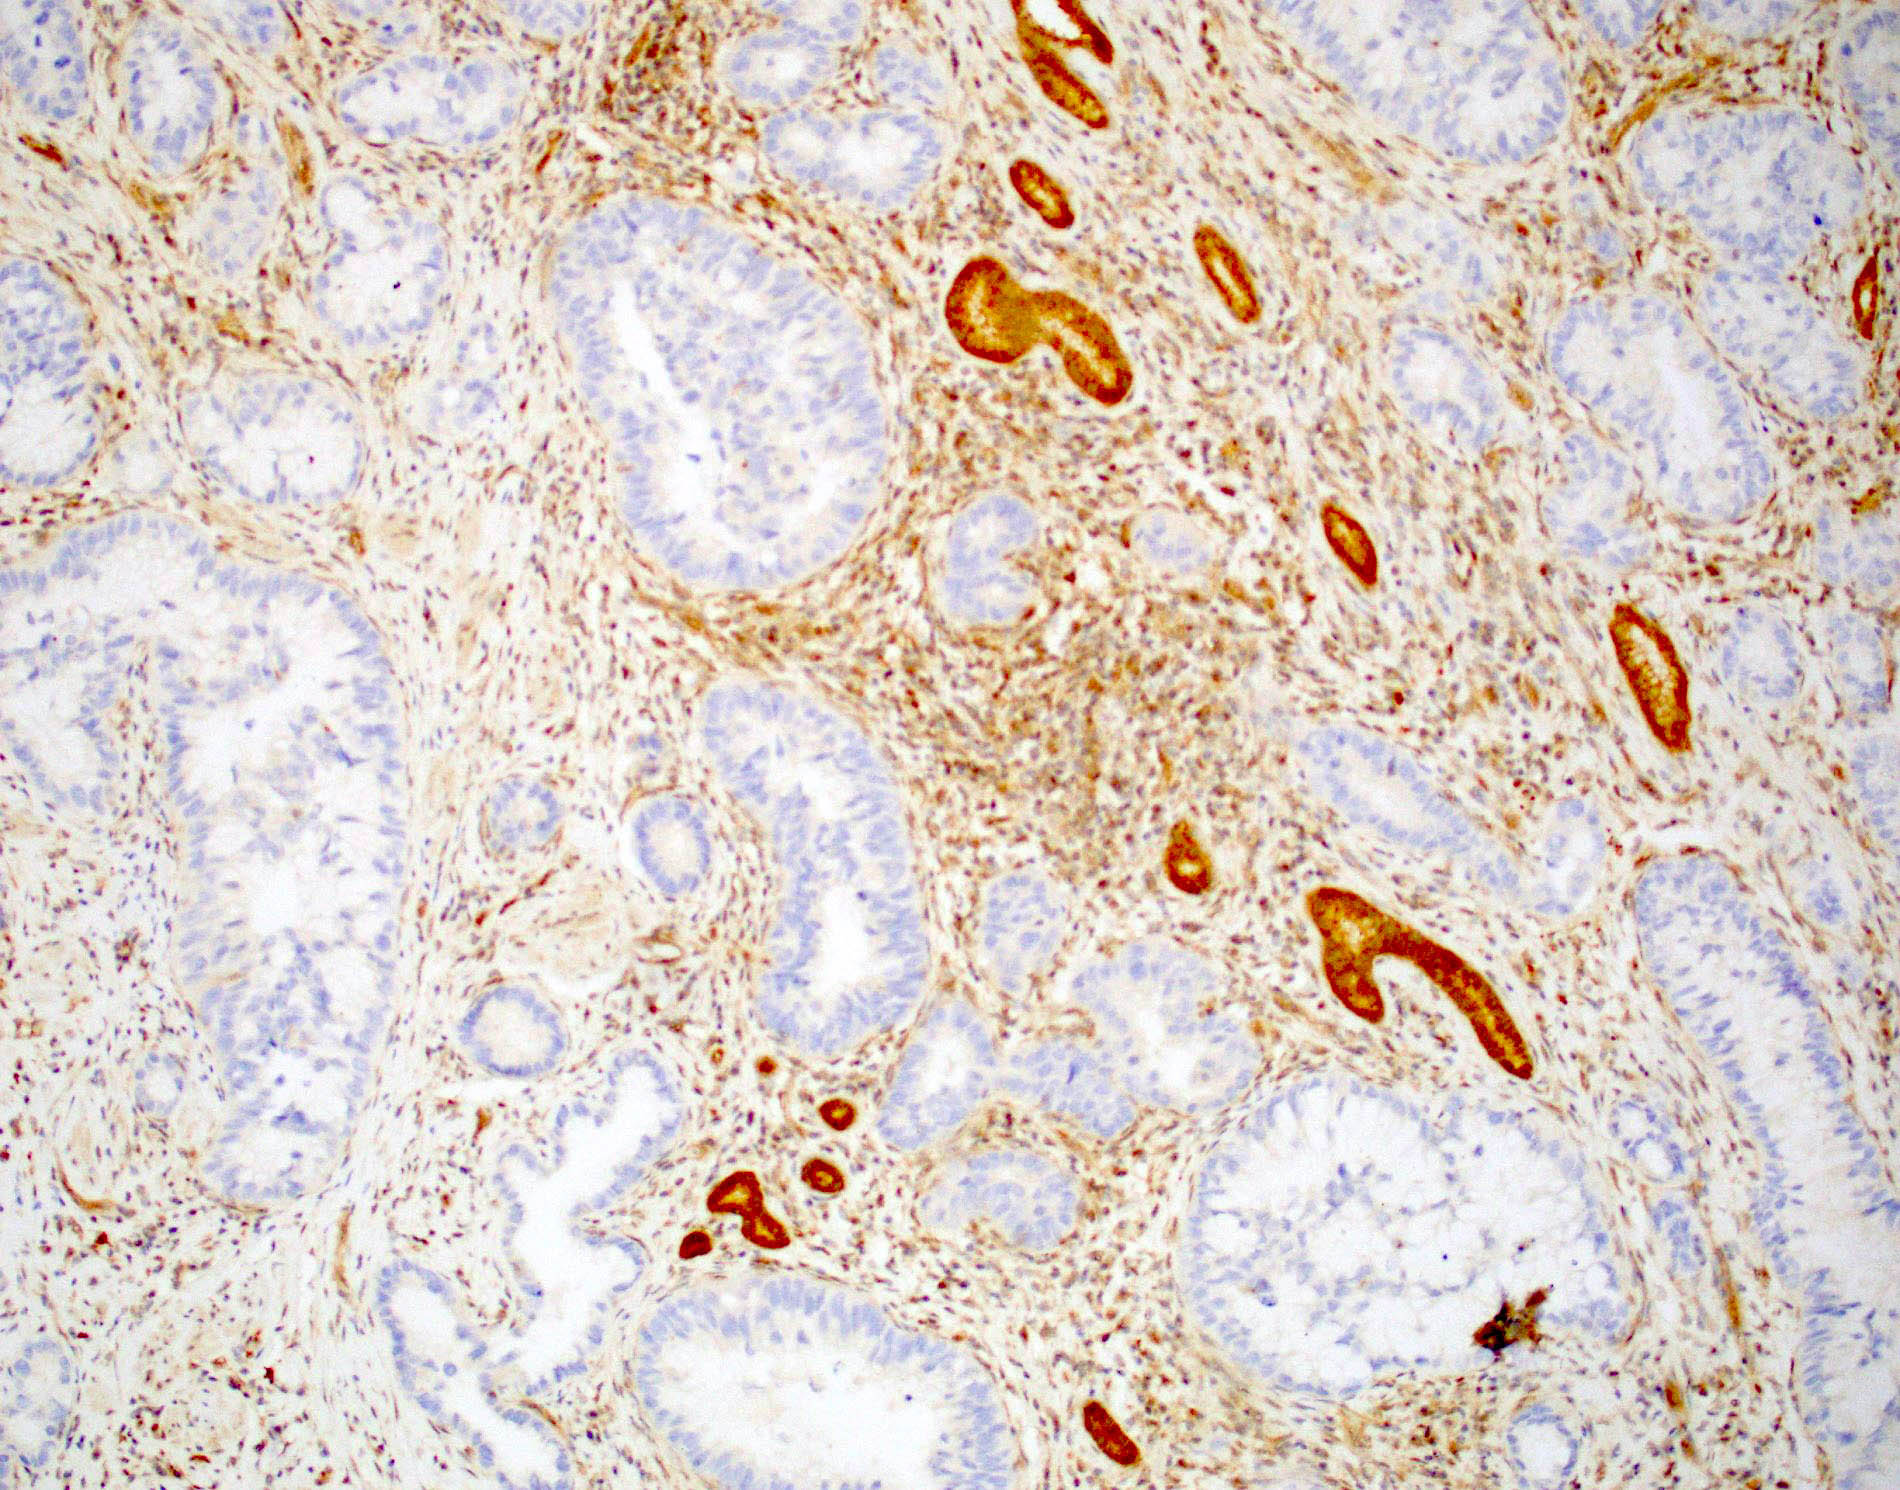 Extrahepatic cholangiocarcinoma